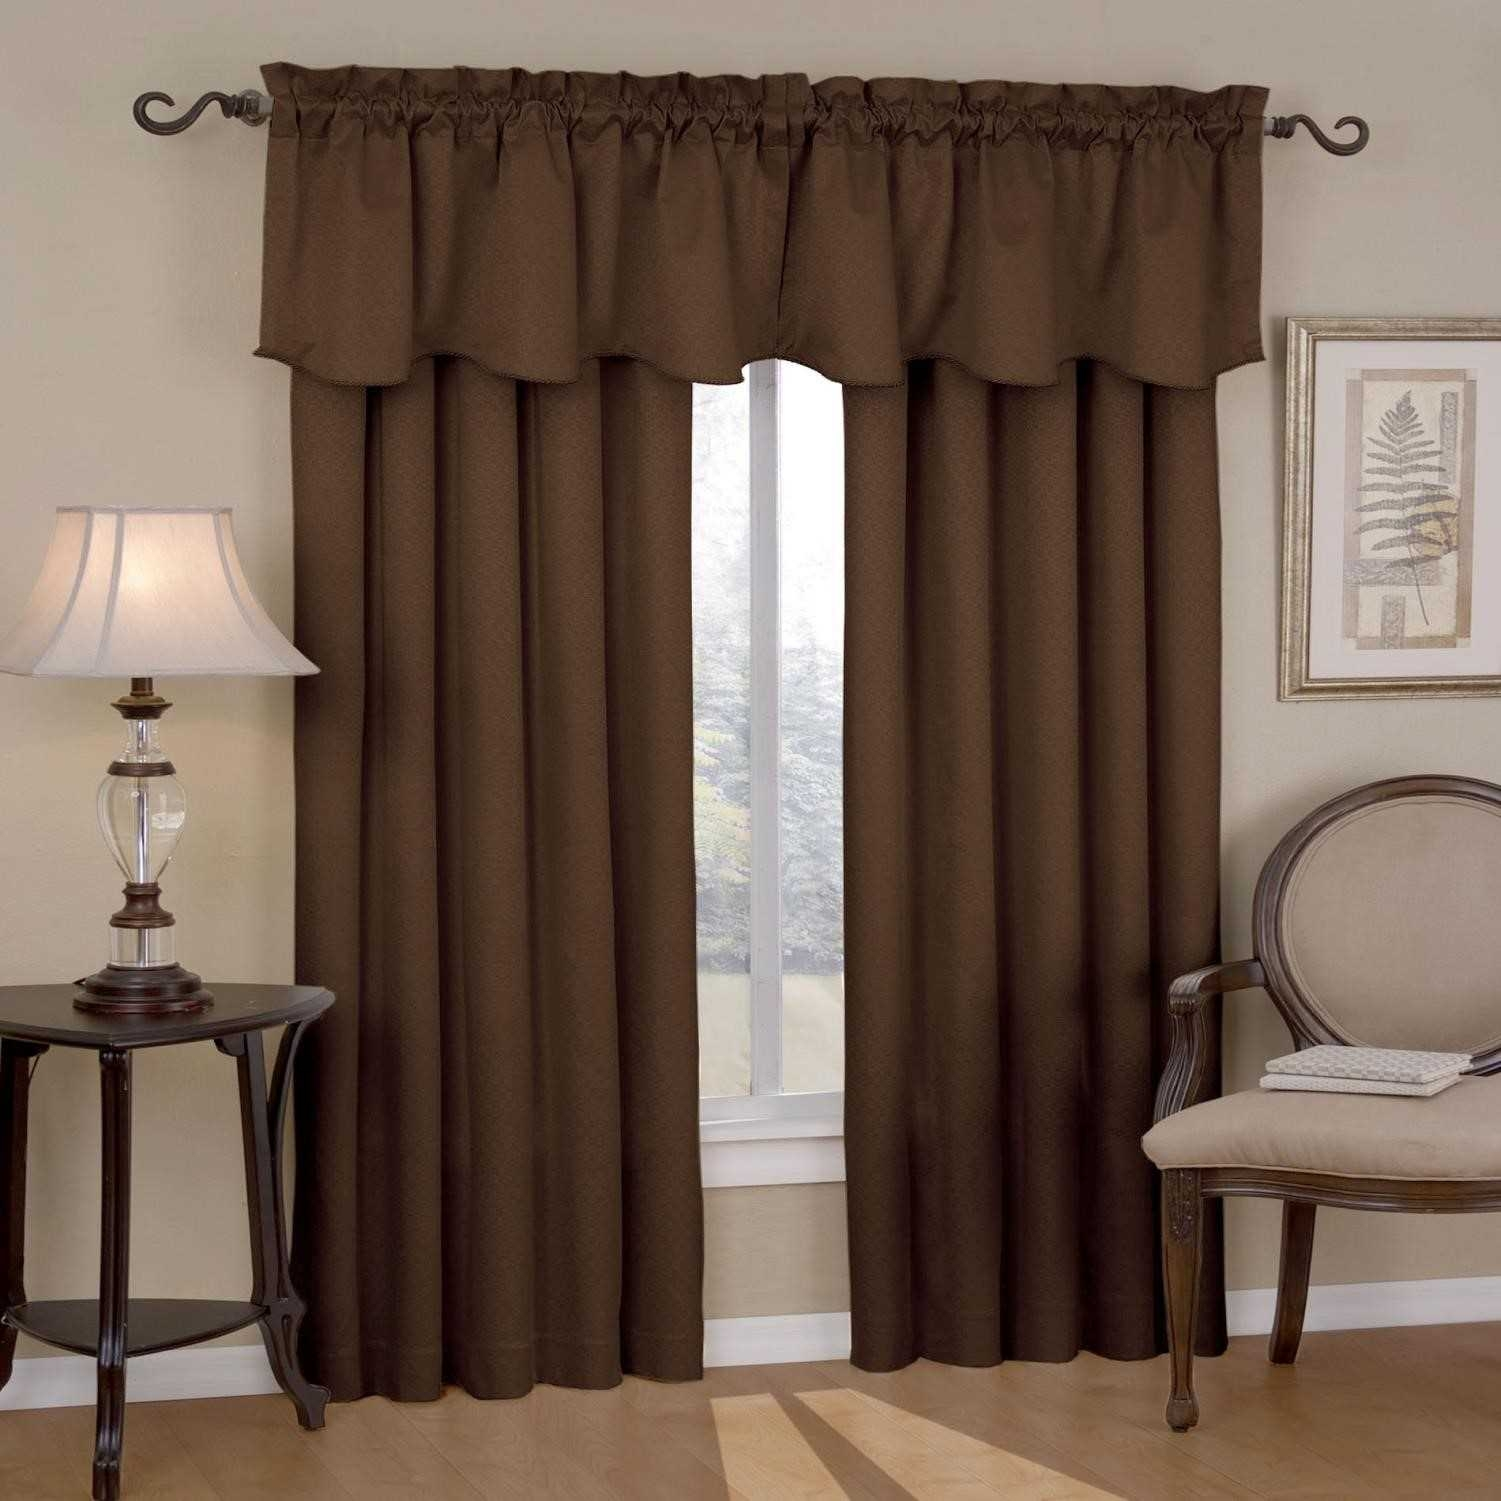 Colorful Curtains Brown Curtains For Bedroom Modern Room Tv Intended For Black And Brown Curtains (Image 5 of 15)